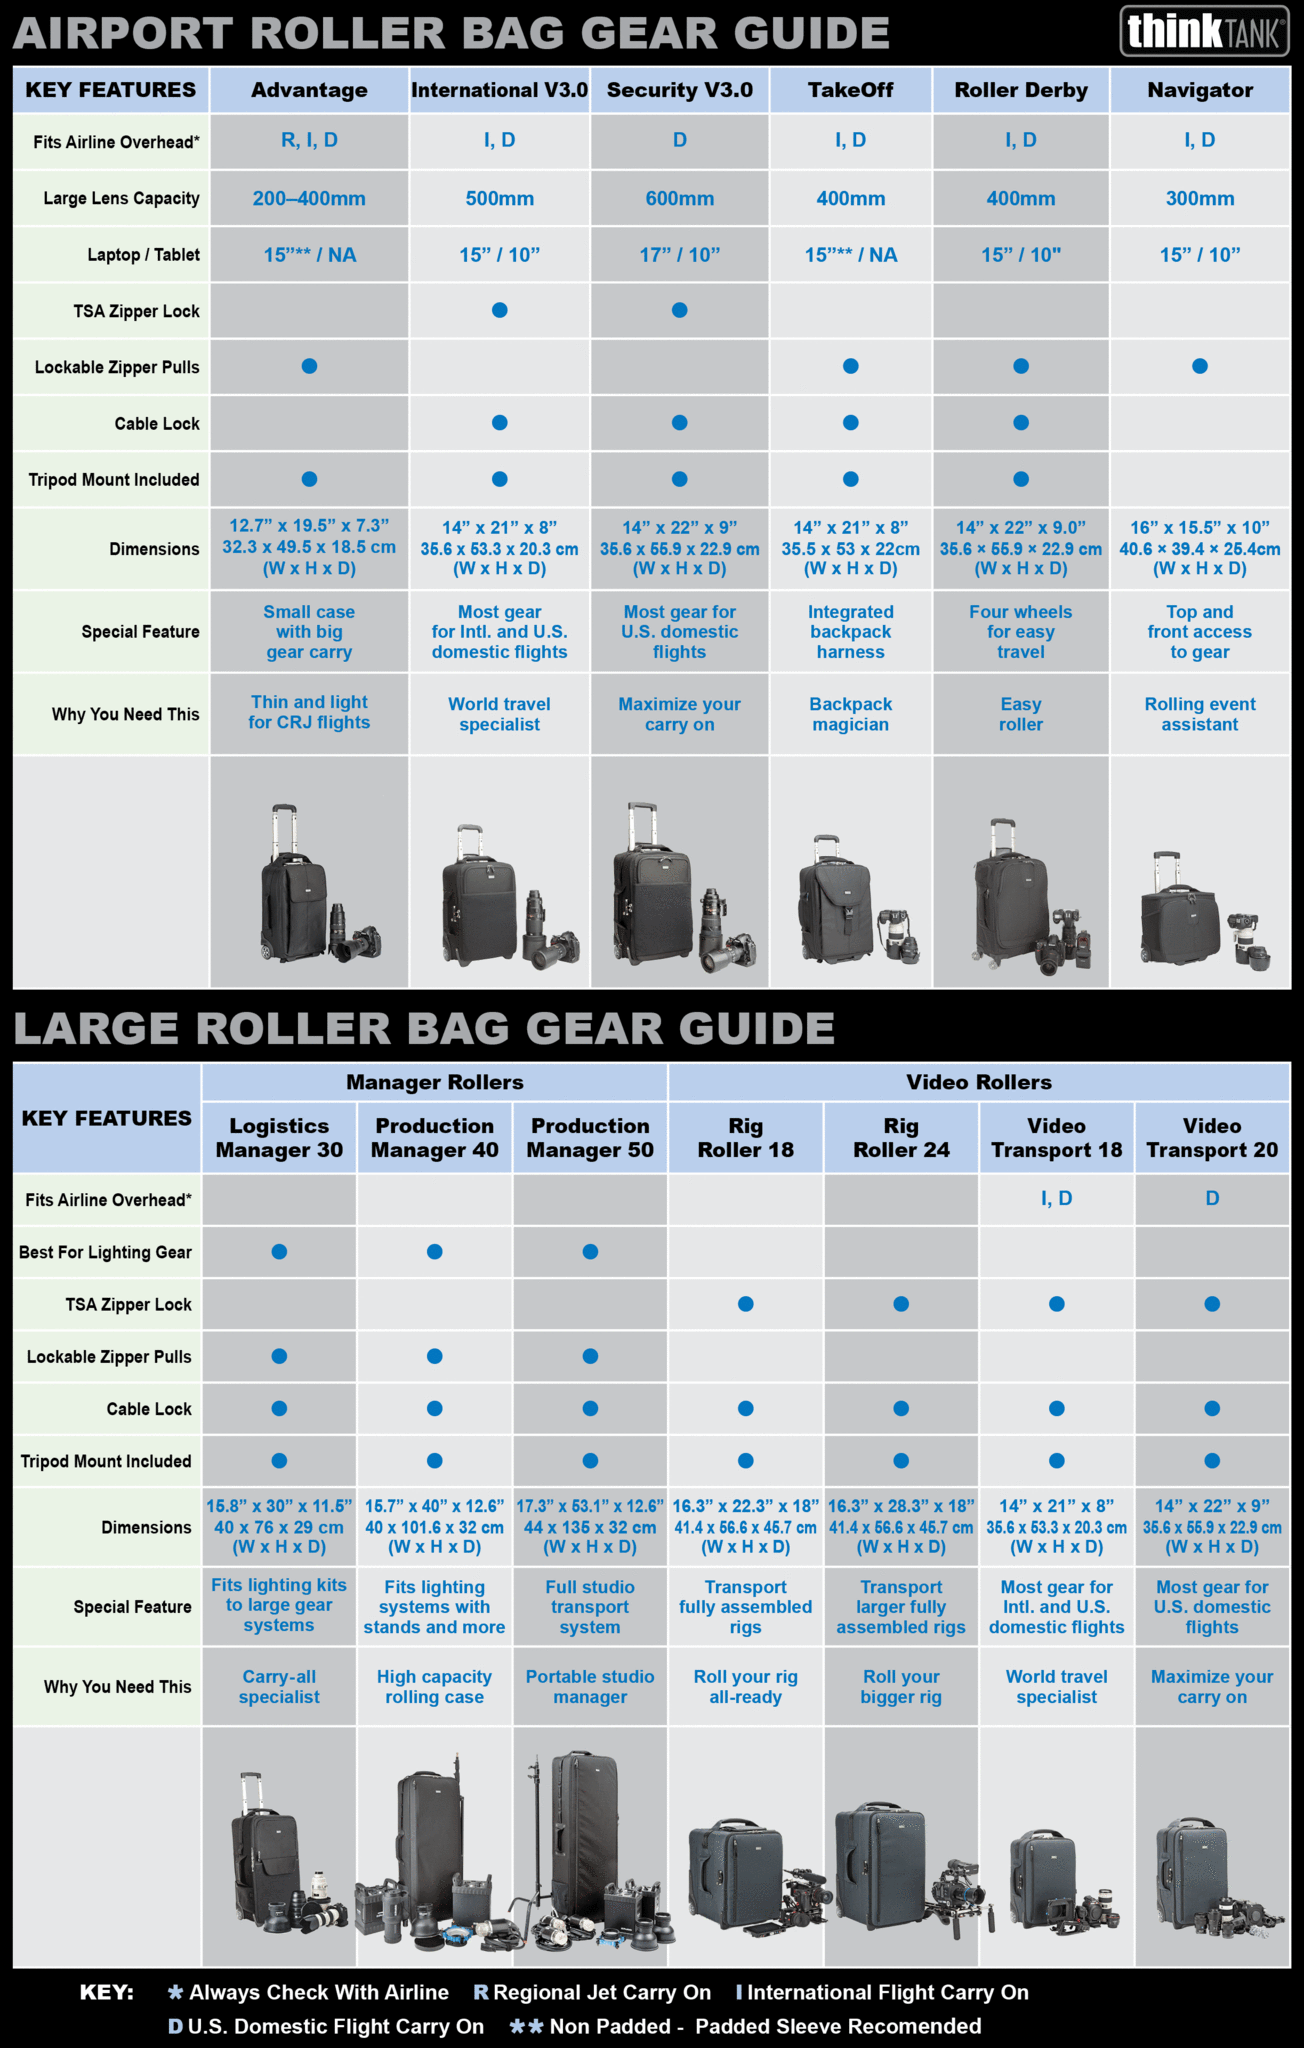 Roller Bag Gear Guide